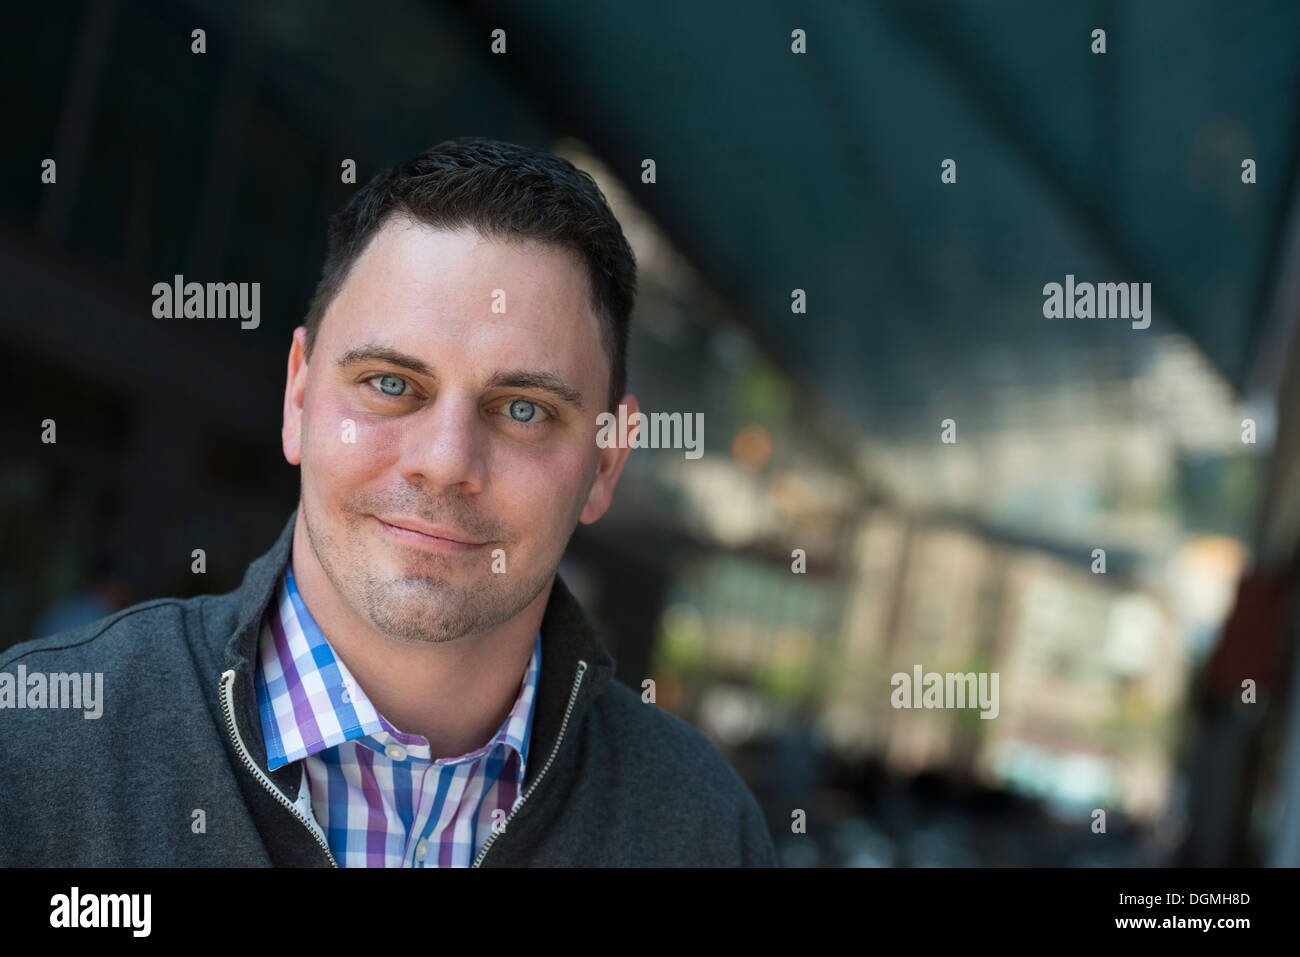 Business people on the move. A man in a open necked shirt and jacket. - Stock Image